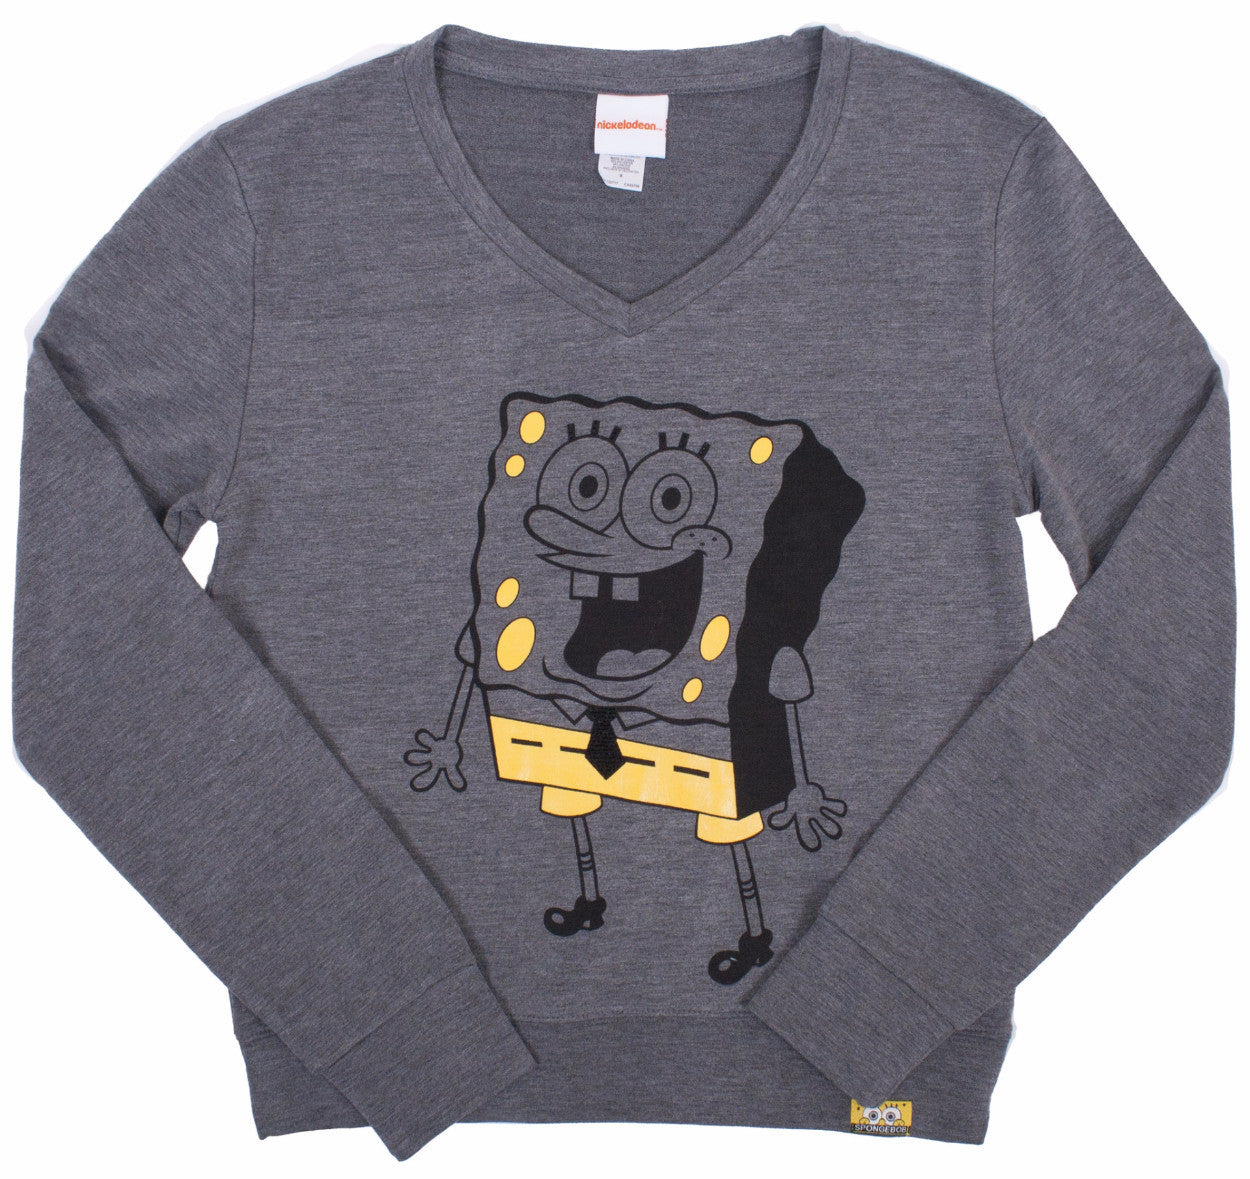 SpongeBob SquarePants Monochrome L/S V-Neck Charcoal - Junior